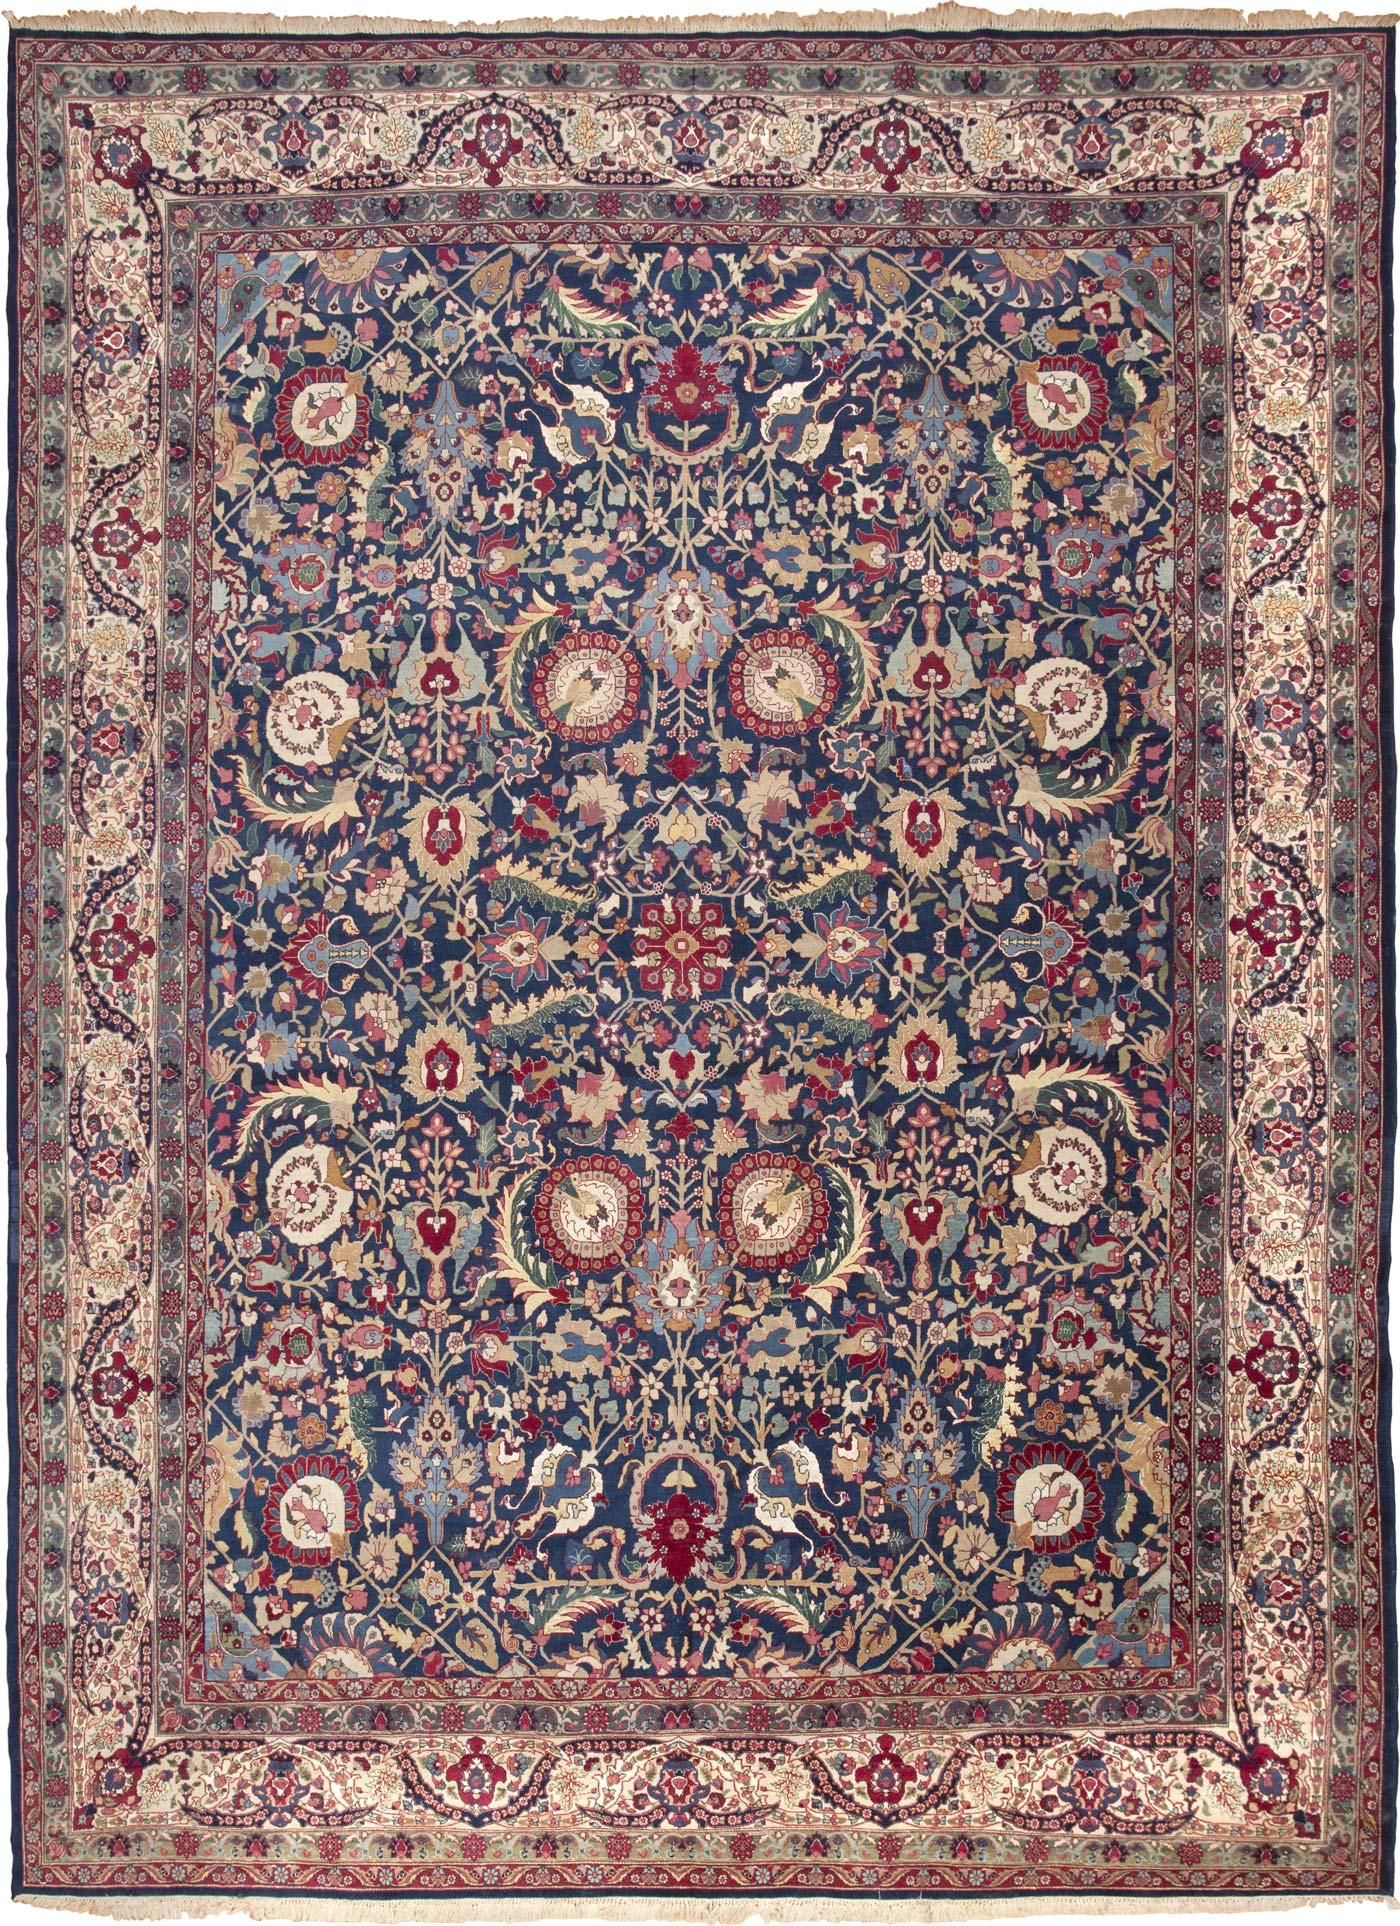 Antique Carpets Antique Persian Carpet Area Rugs For Sale Rugs